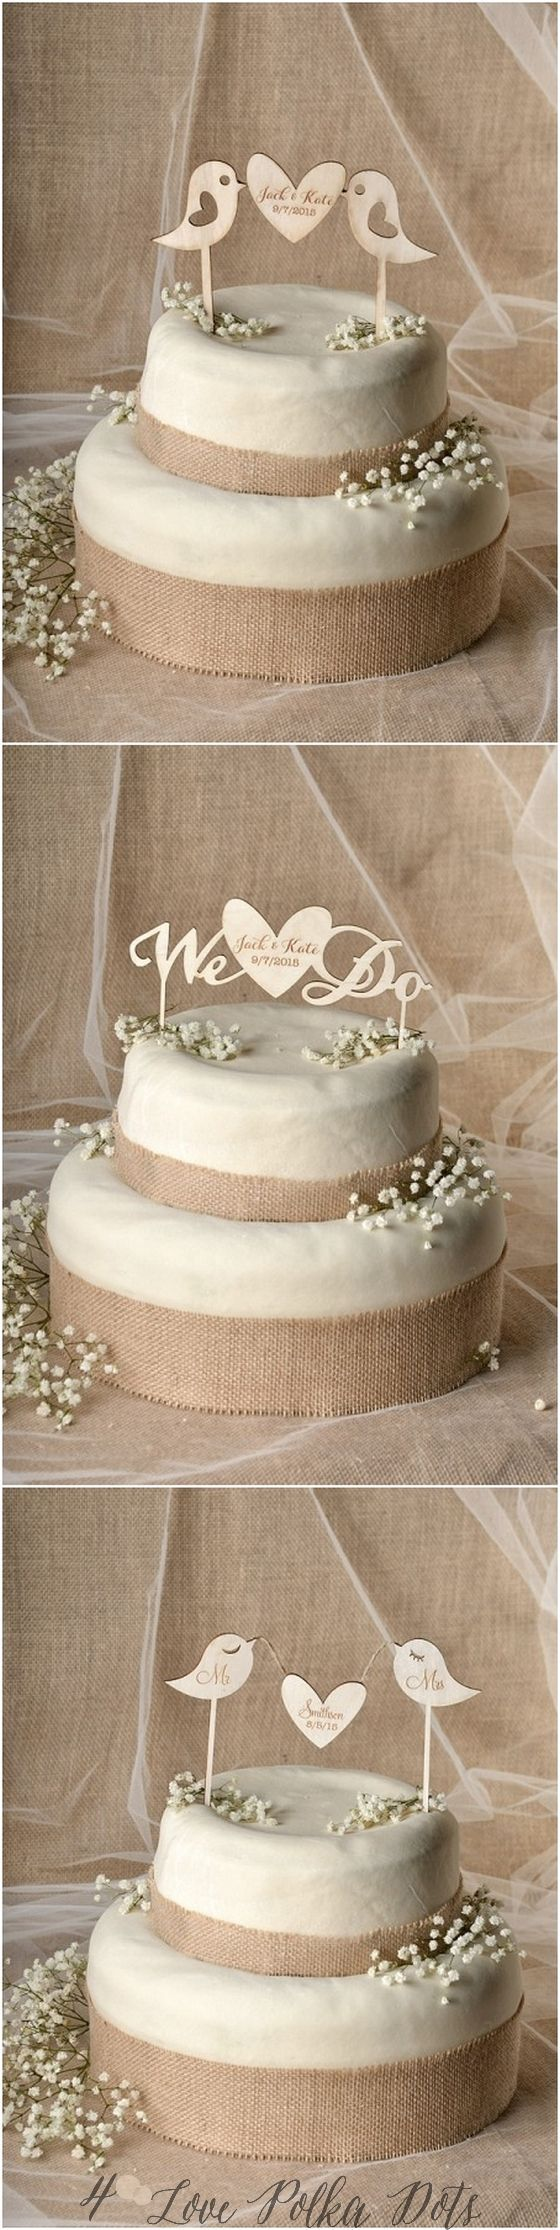 best wedding cake toppers images on pinterest